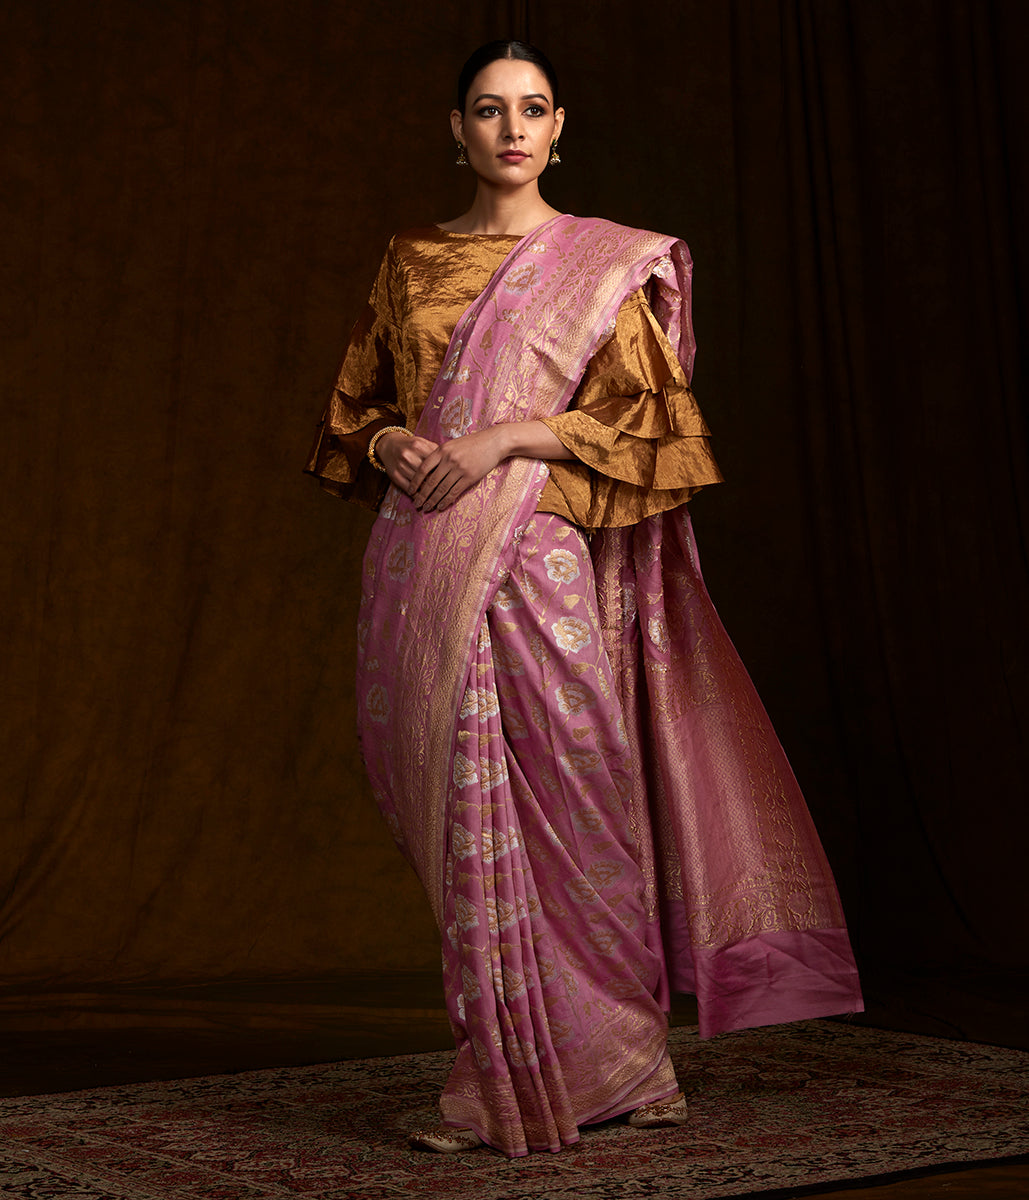 Rose pink Handwoven Banarasi munga silk saree woven with sona rupa zari